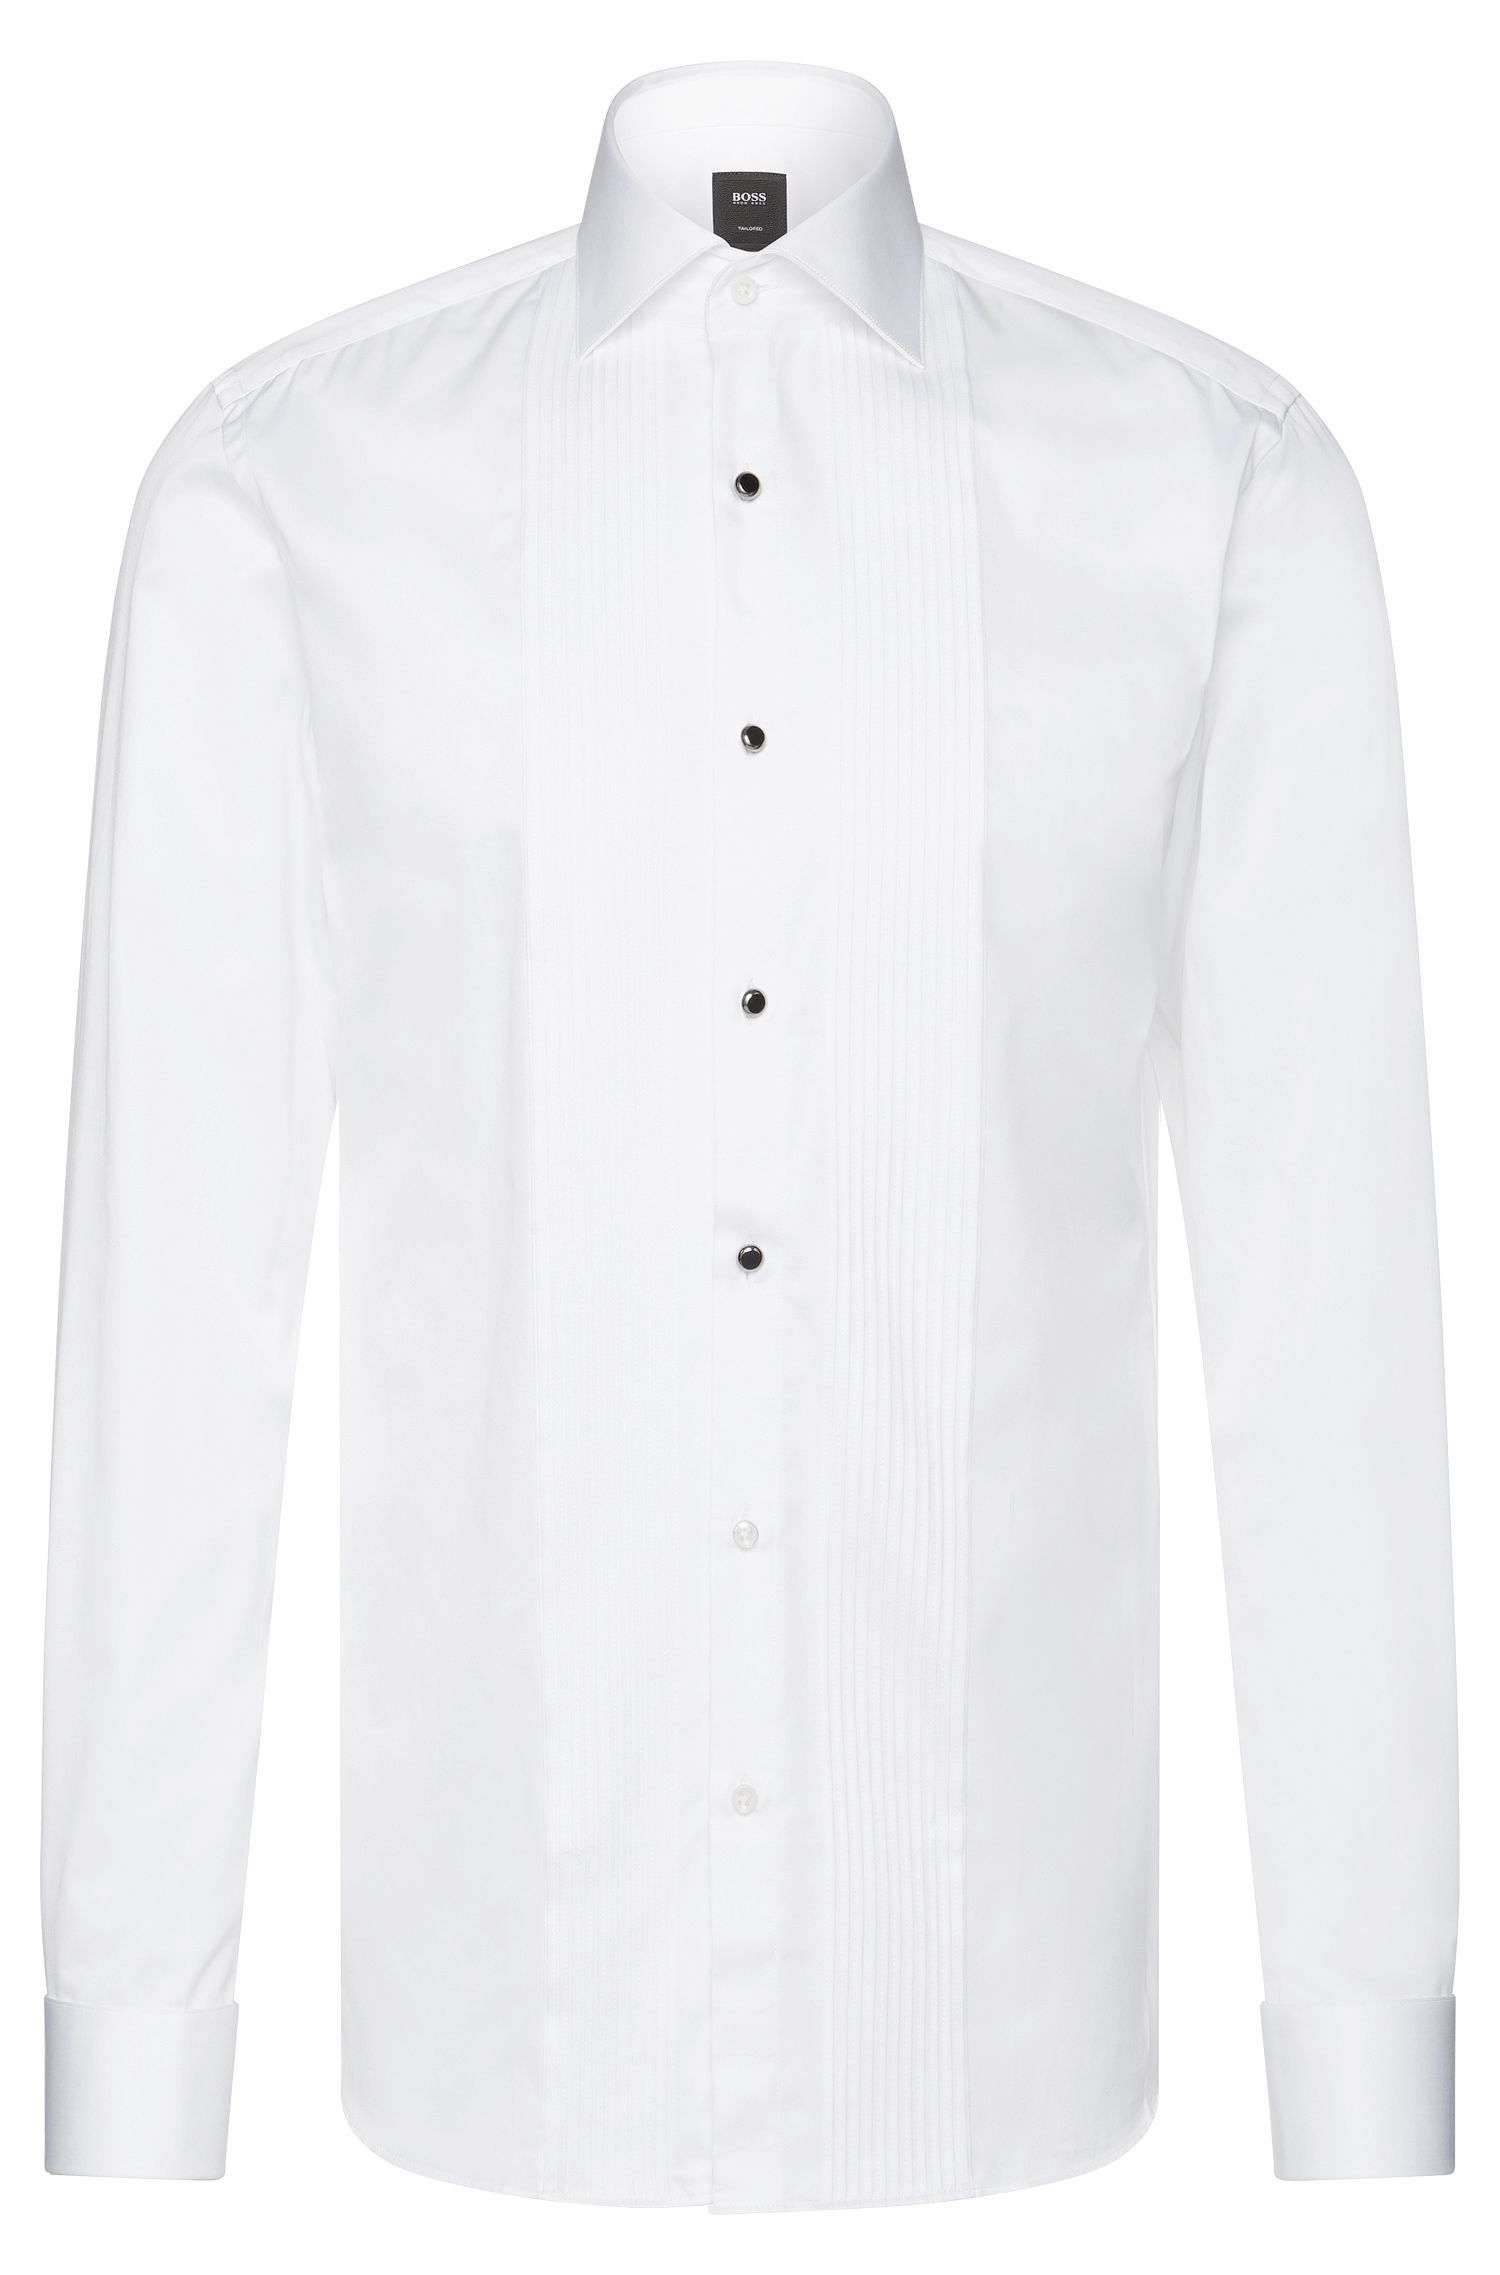 Egyptian Cotton French Cuff Dress Shirt, Slim Fit | T-Cameron, White